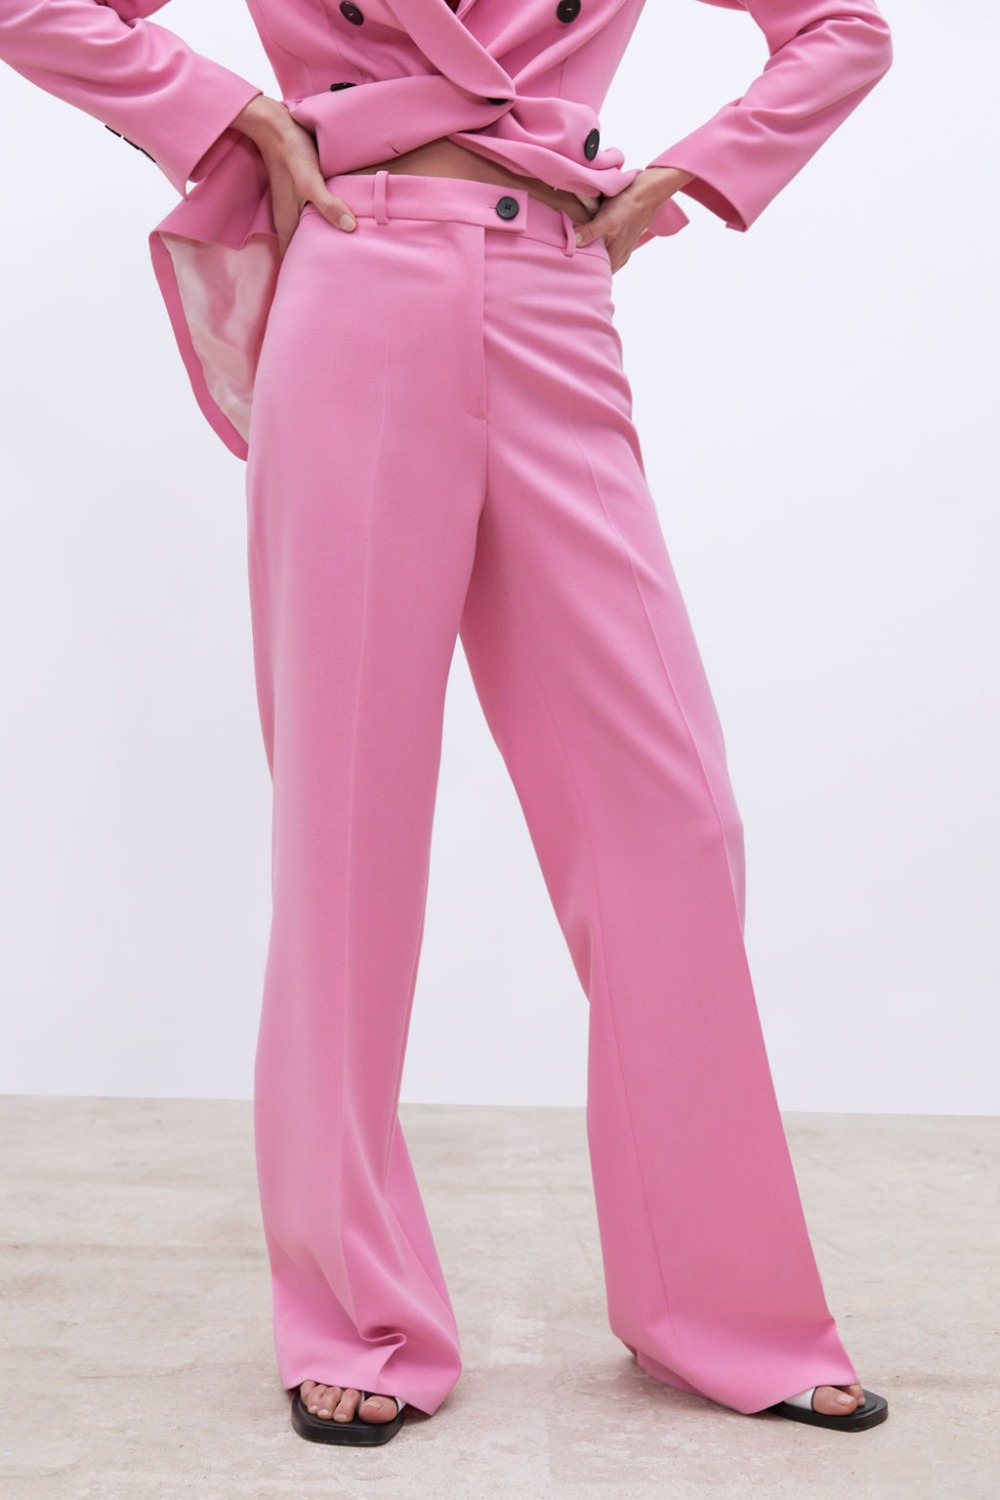 Image 3 - 2019 New Spring BF style Double breasted Button Women Pink Blazer High Waist Small Straight Pants Long Sleeve Suits 2 Pieces SetWomens Sets   -